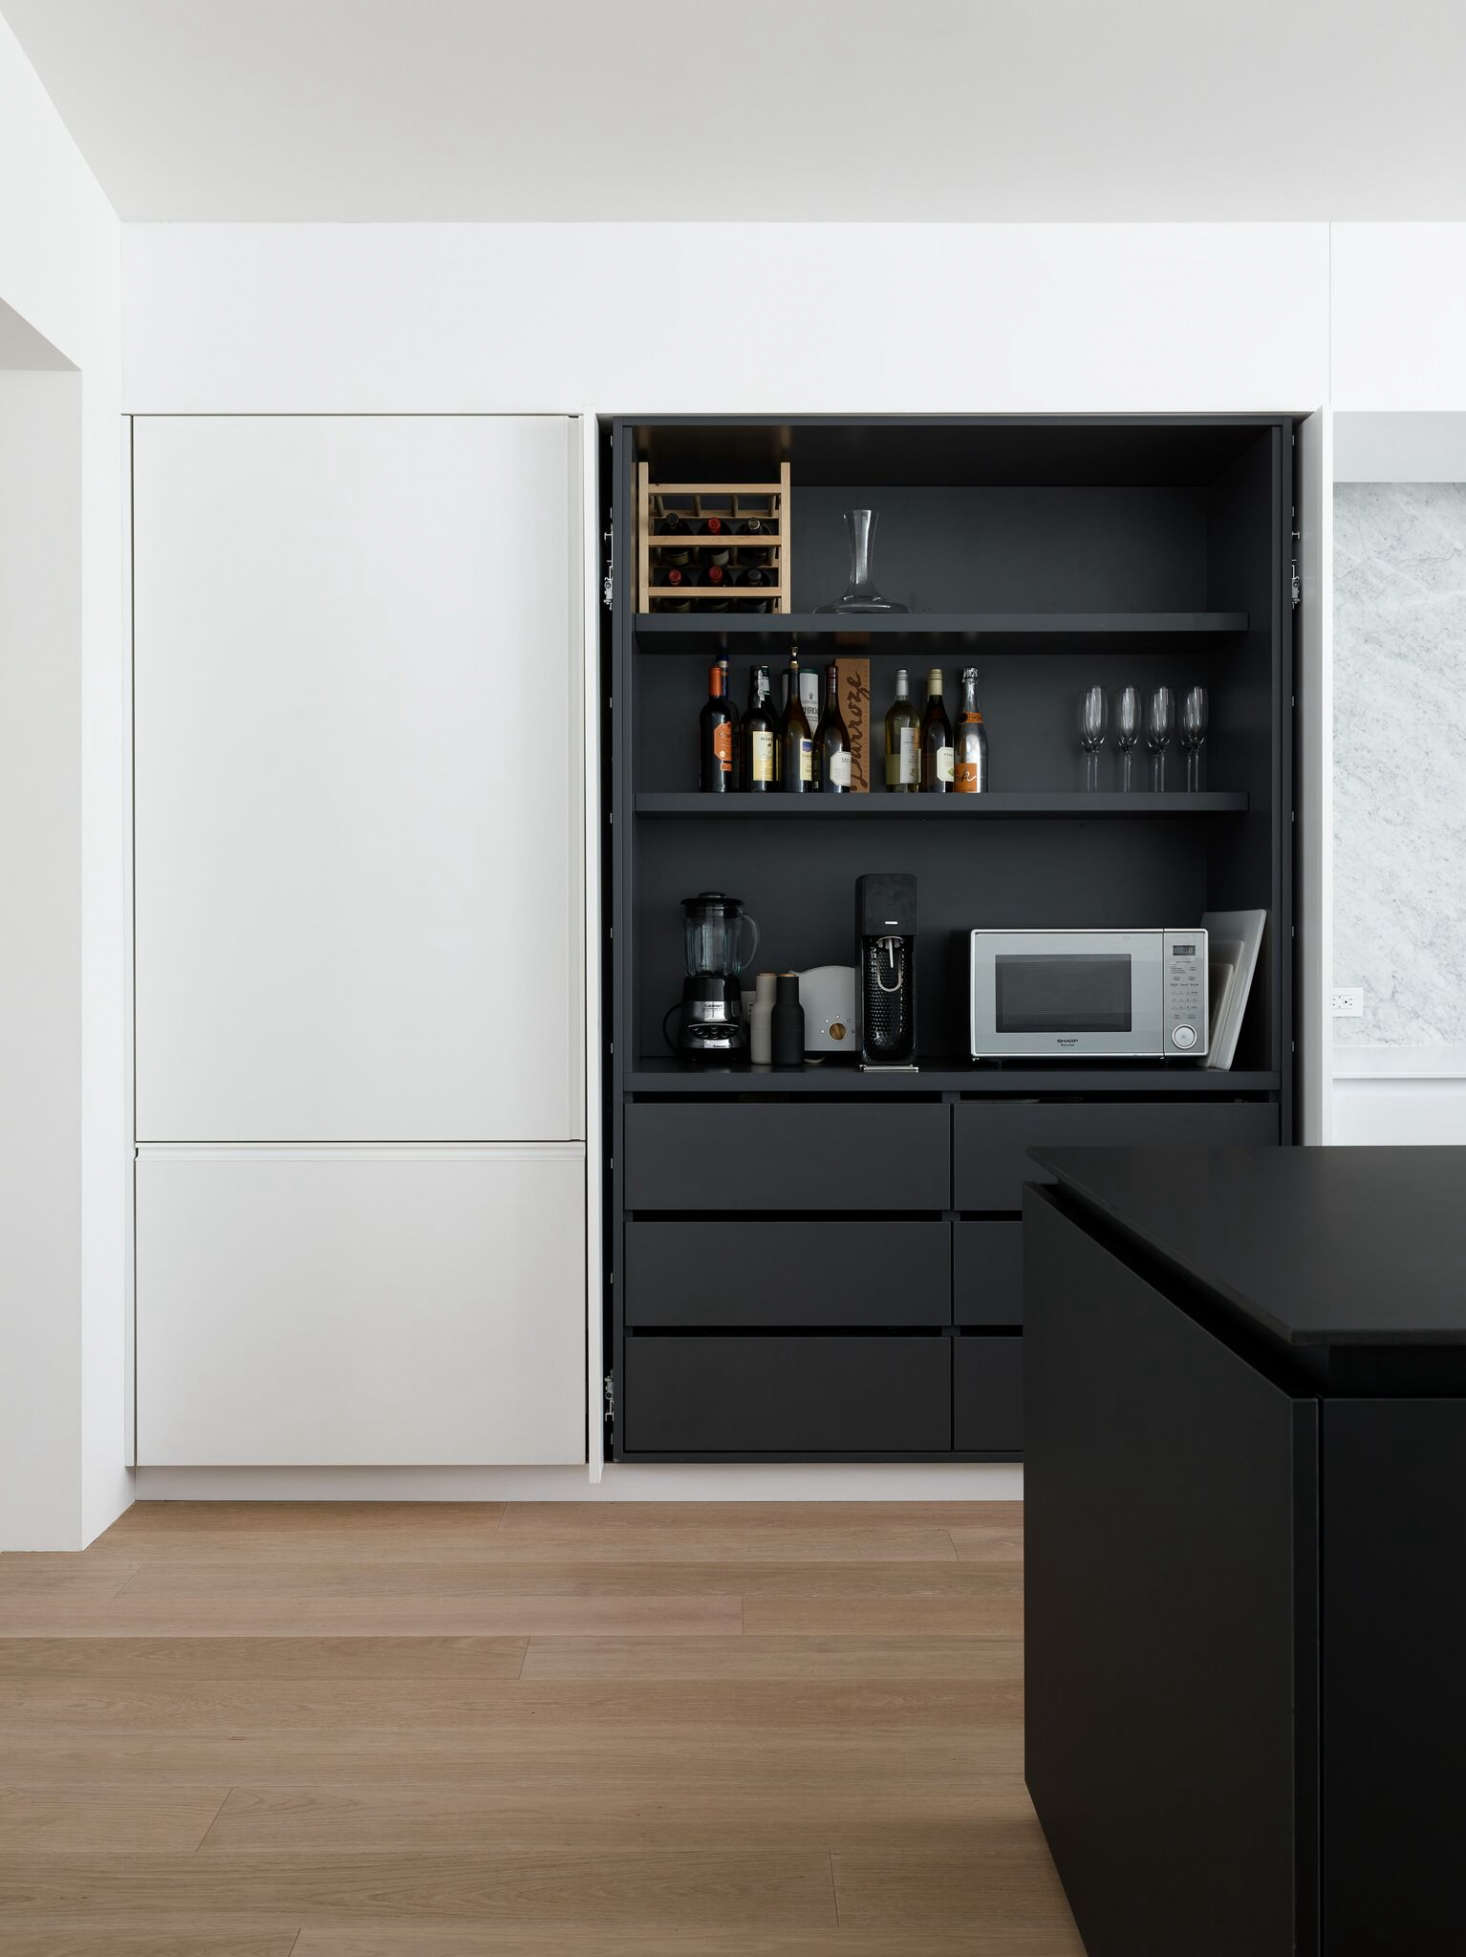 Pocket doors conceal shelving and small appliances in the Noe Valley kitchen of Robert Edmonds and Vivian Lee of Edmonds + Lee Architects.